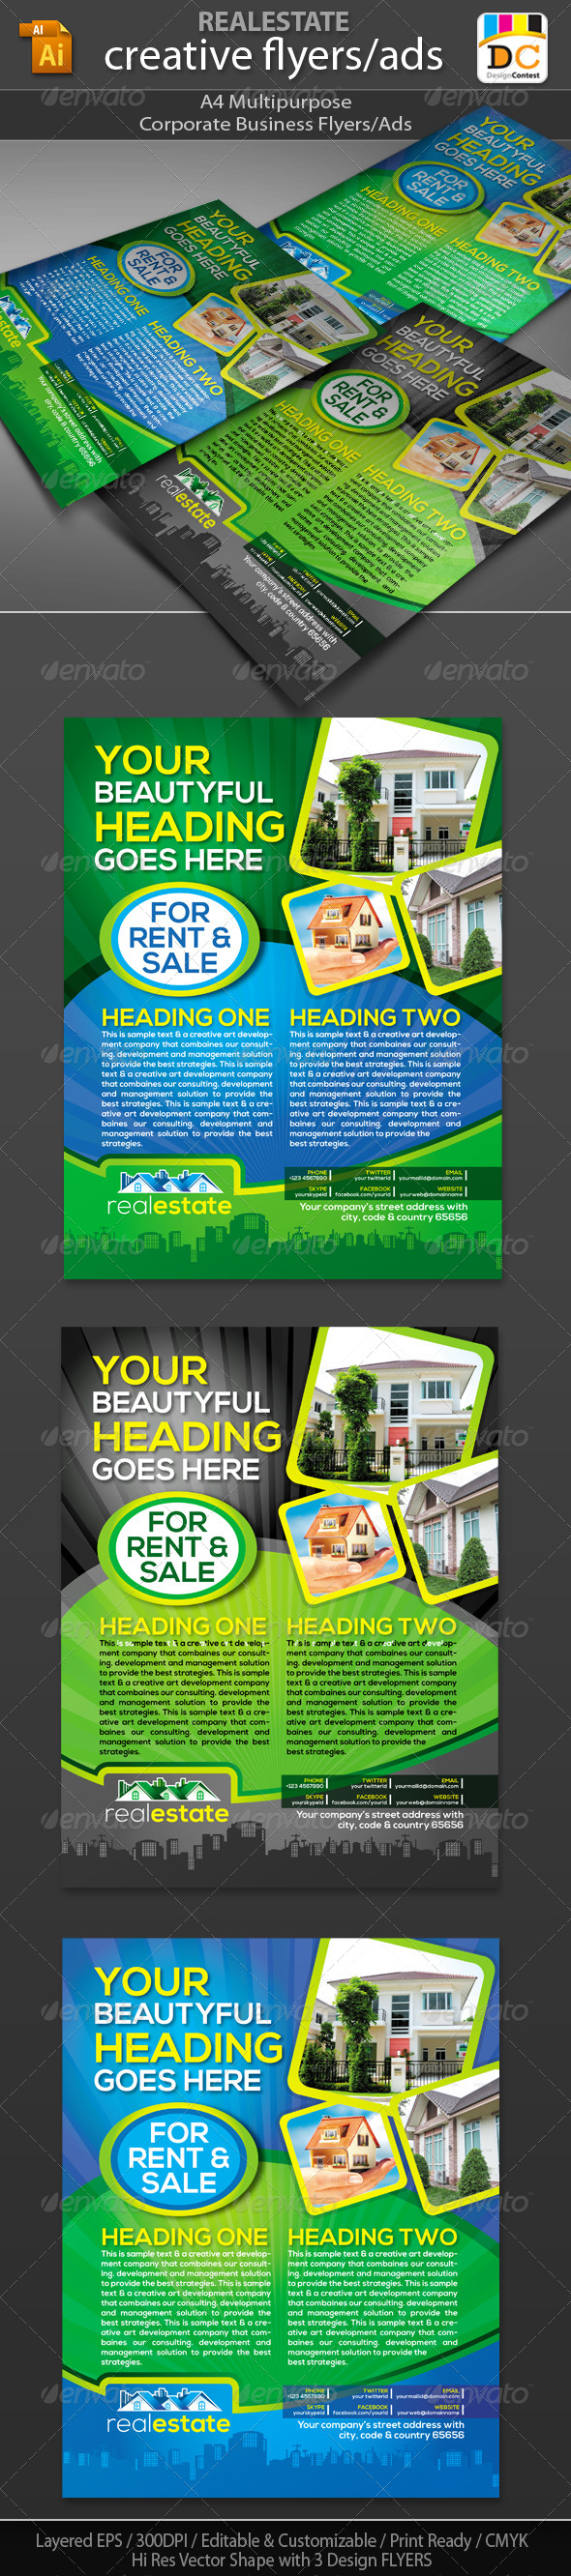 GraphicRiver Real Estate Corporate Business Flyers Adds 4597710